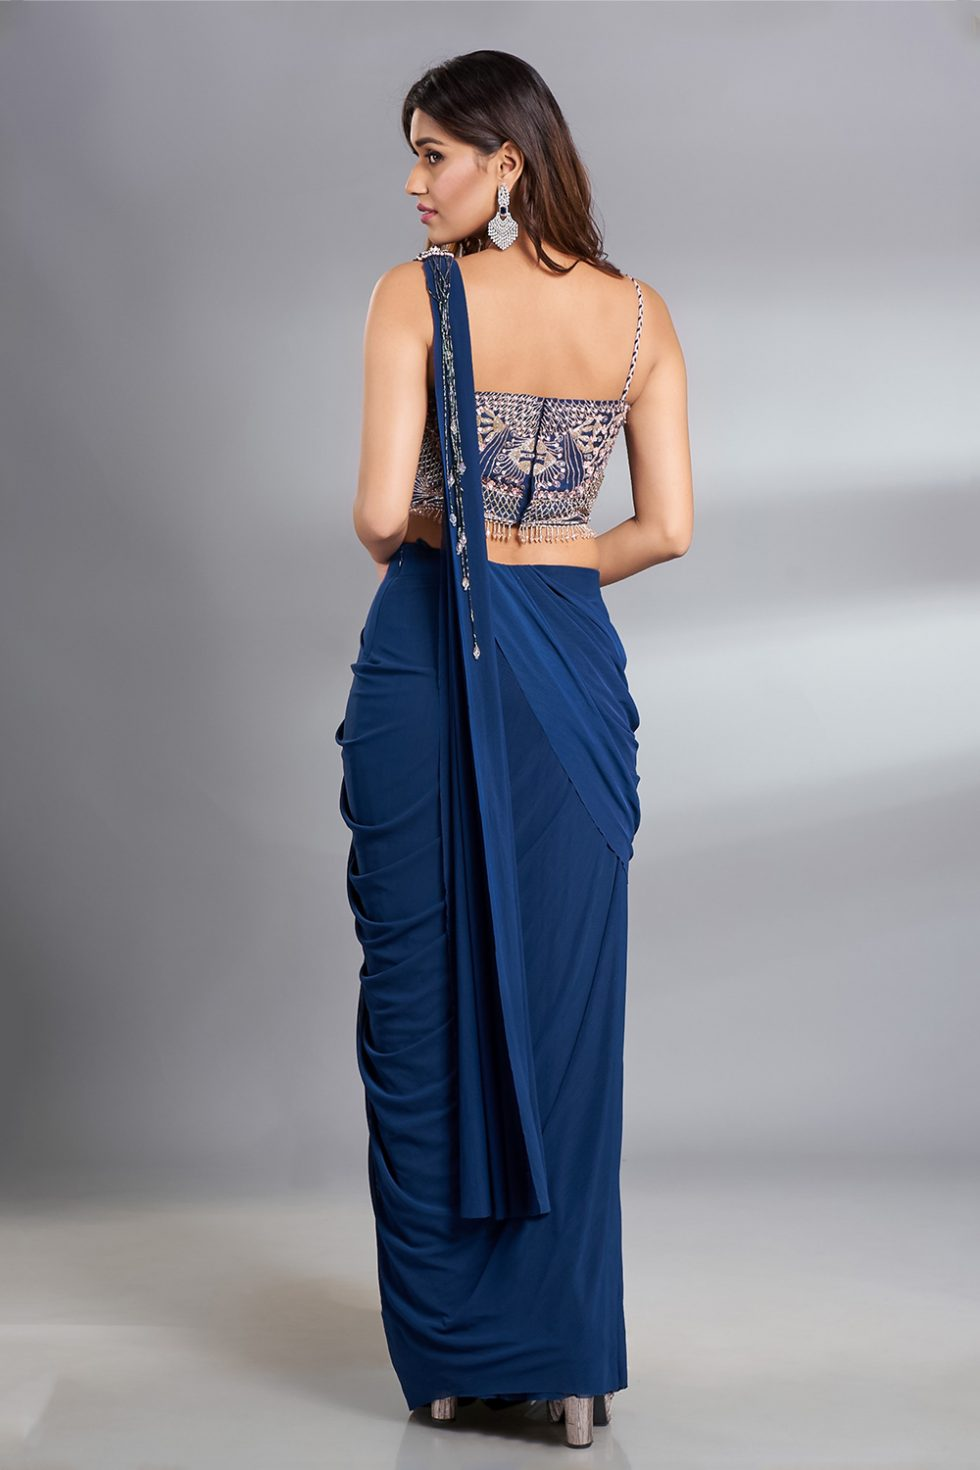 Deep blue pre stitched draped saree and  a cut out blouse with multi coloured contrast hand embroidery and a matching broach and tassels.